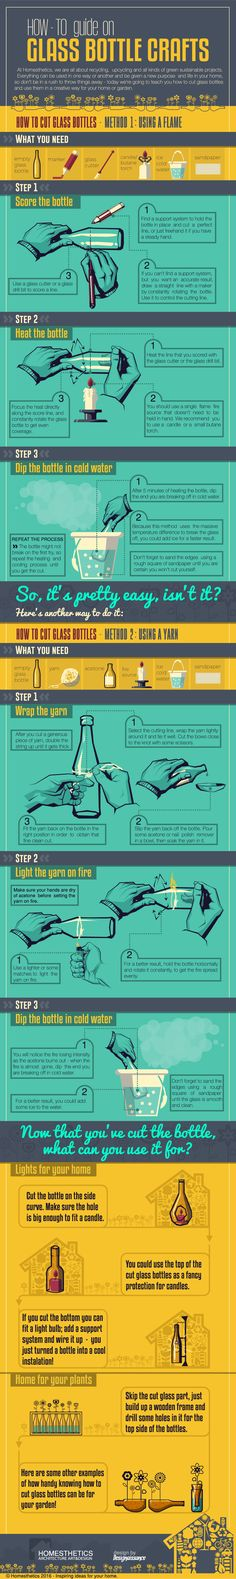 Smart Guide on How to Cut Bottles and Craft With Glass Recipients #infographic